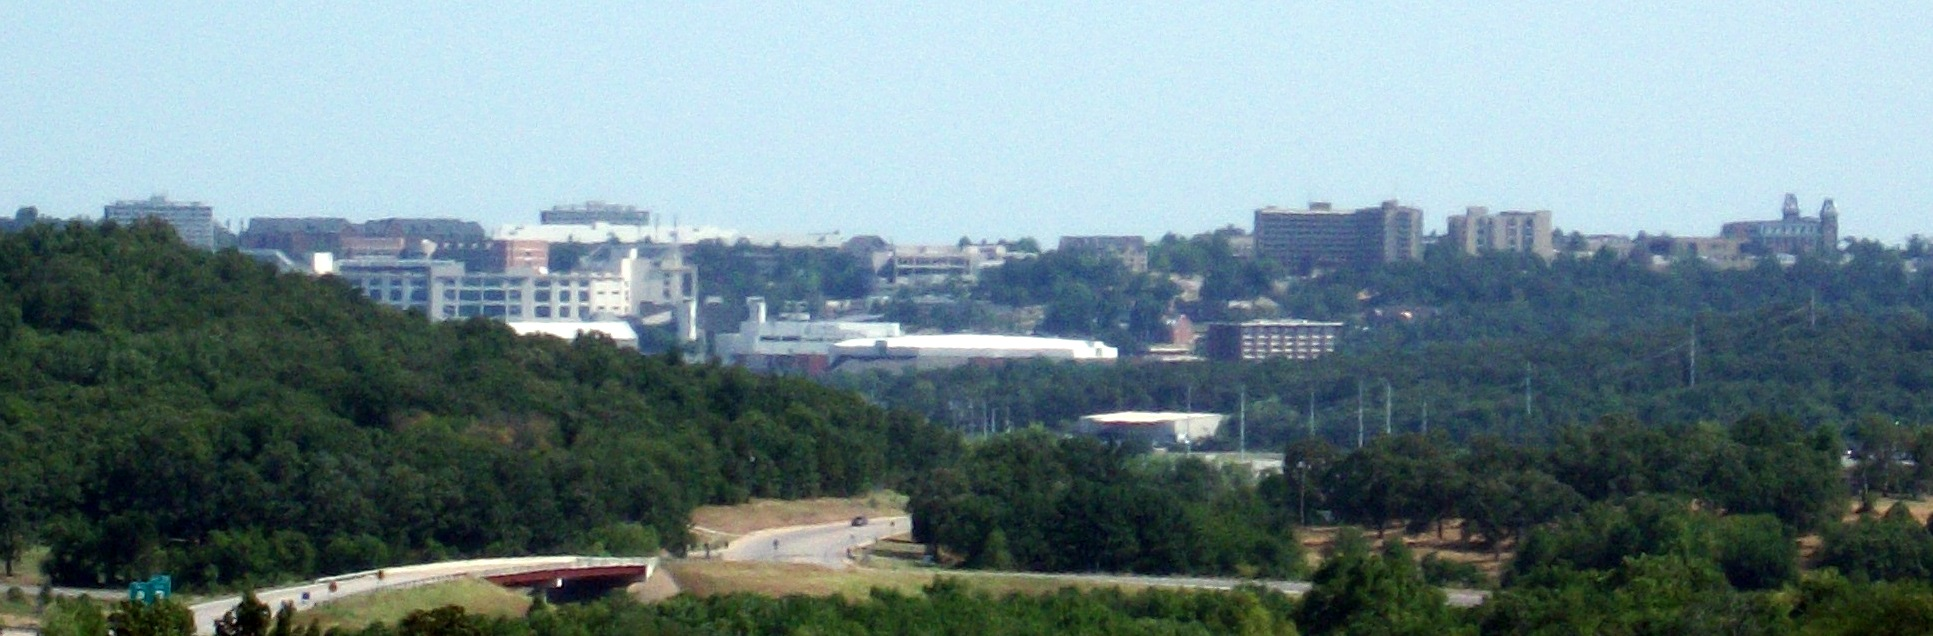 Fayetteville,_Arkansas_skyline_featuring_University_of_Arkansas